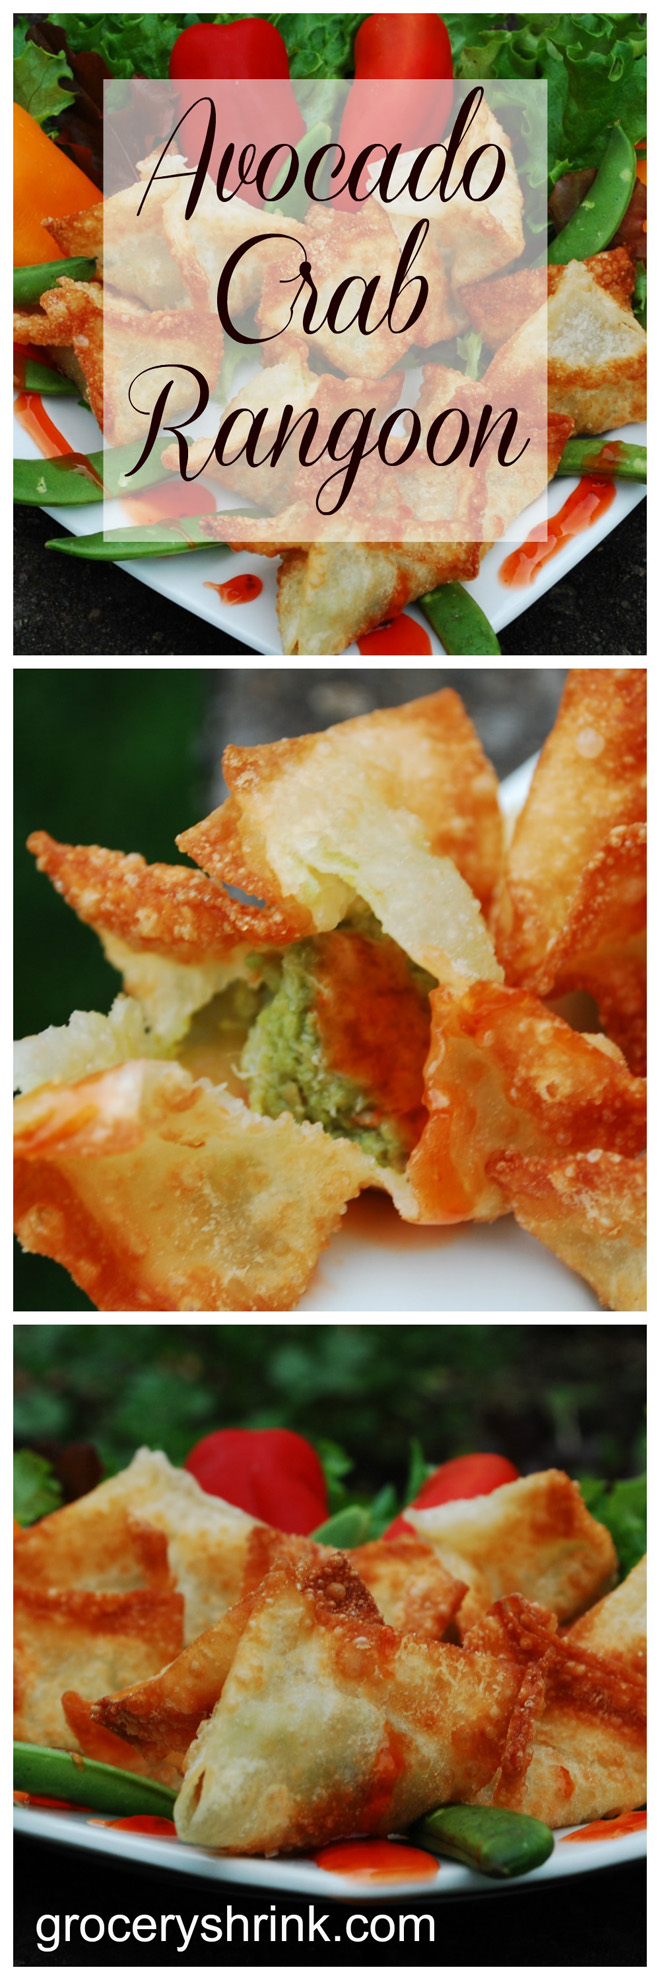 Avocado Crab Rangoon